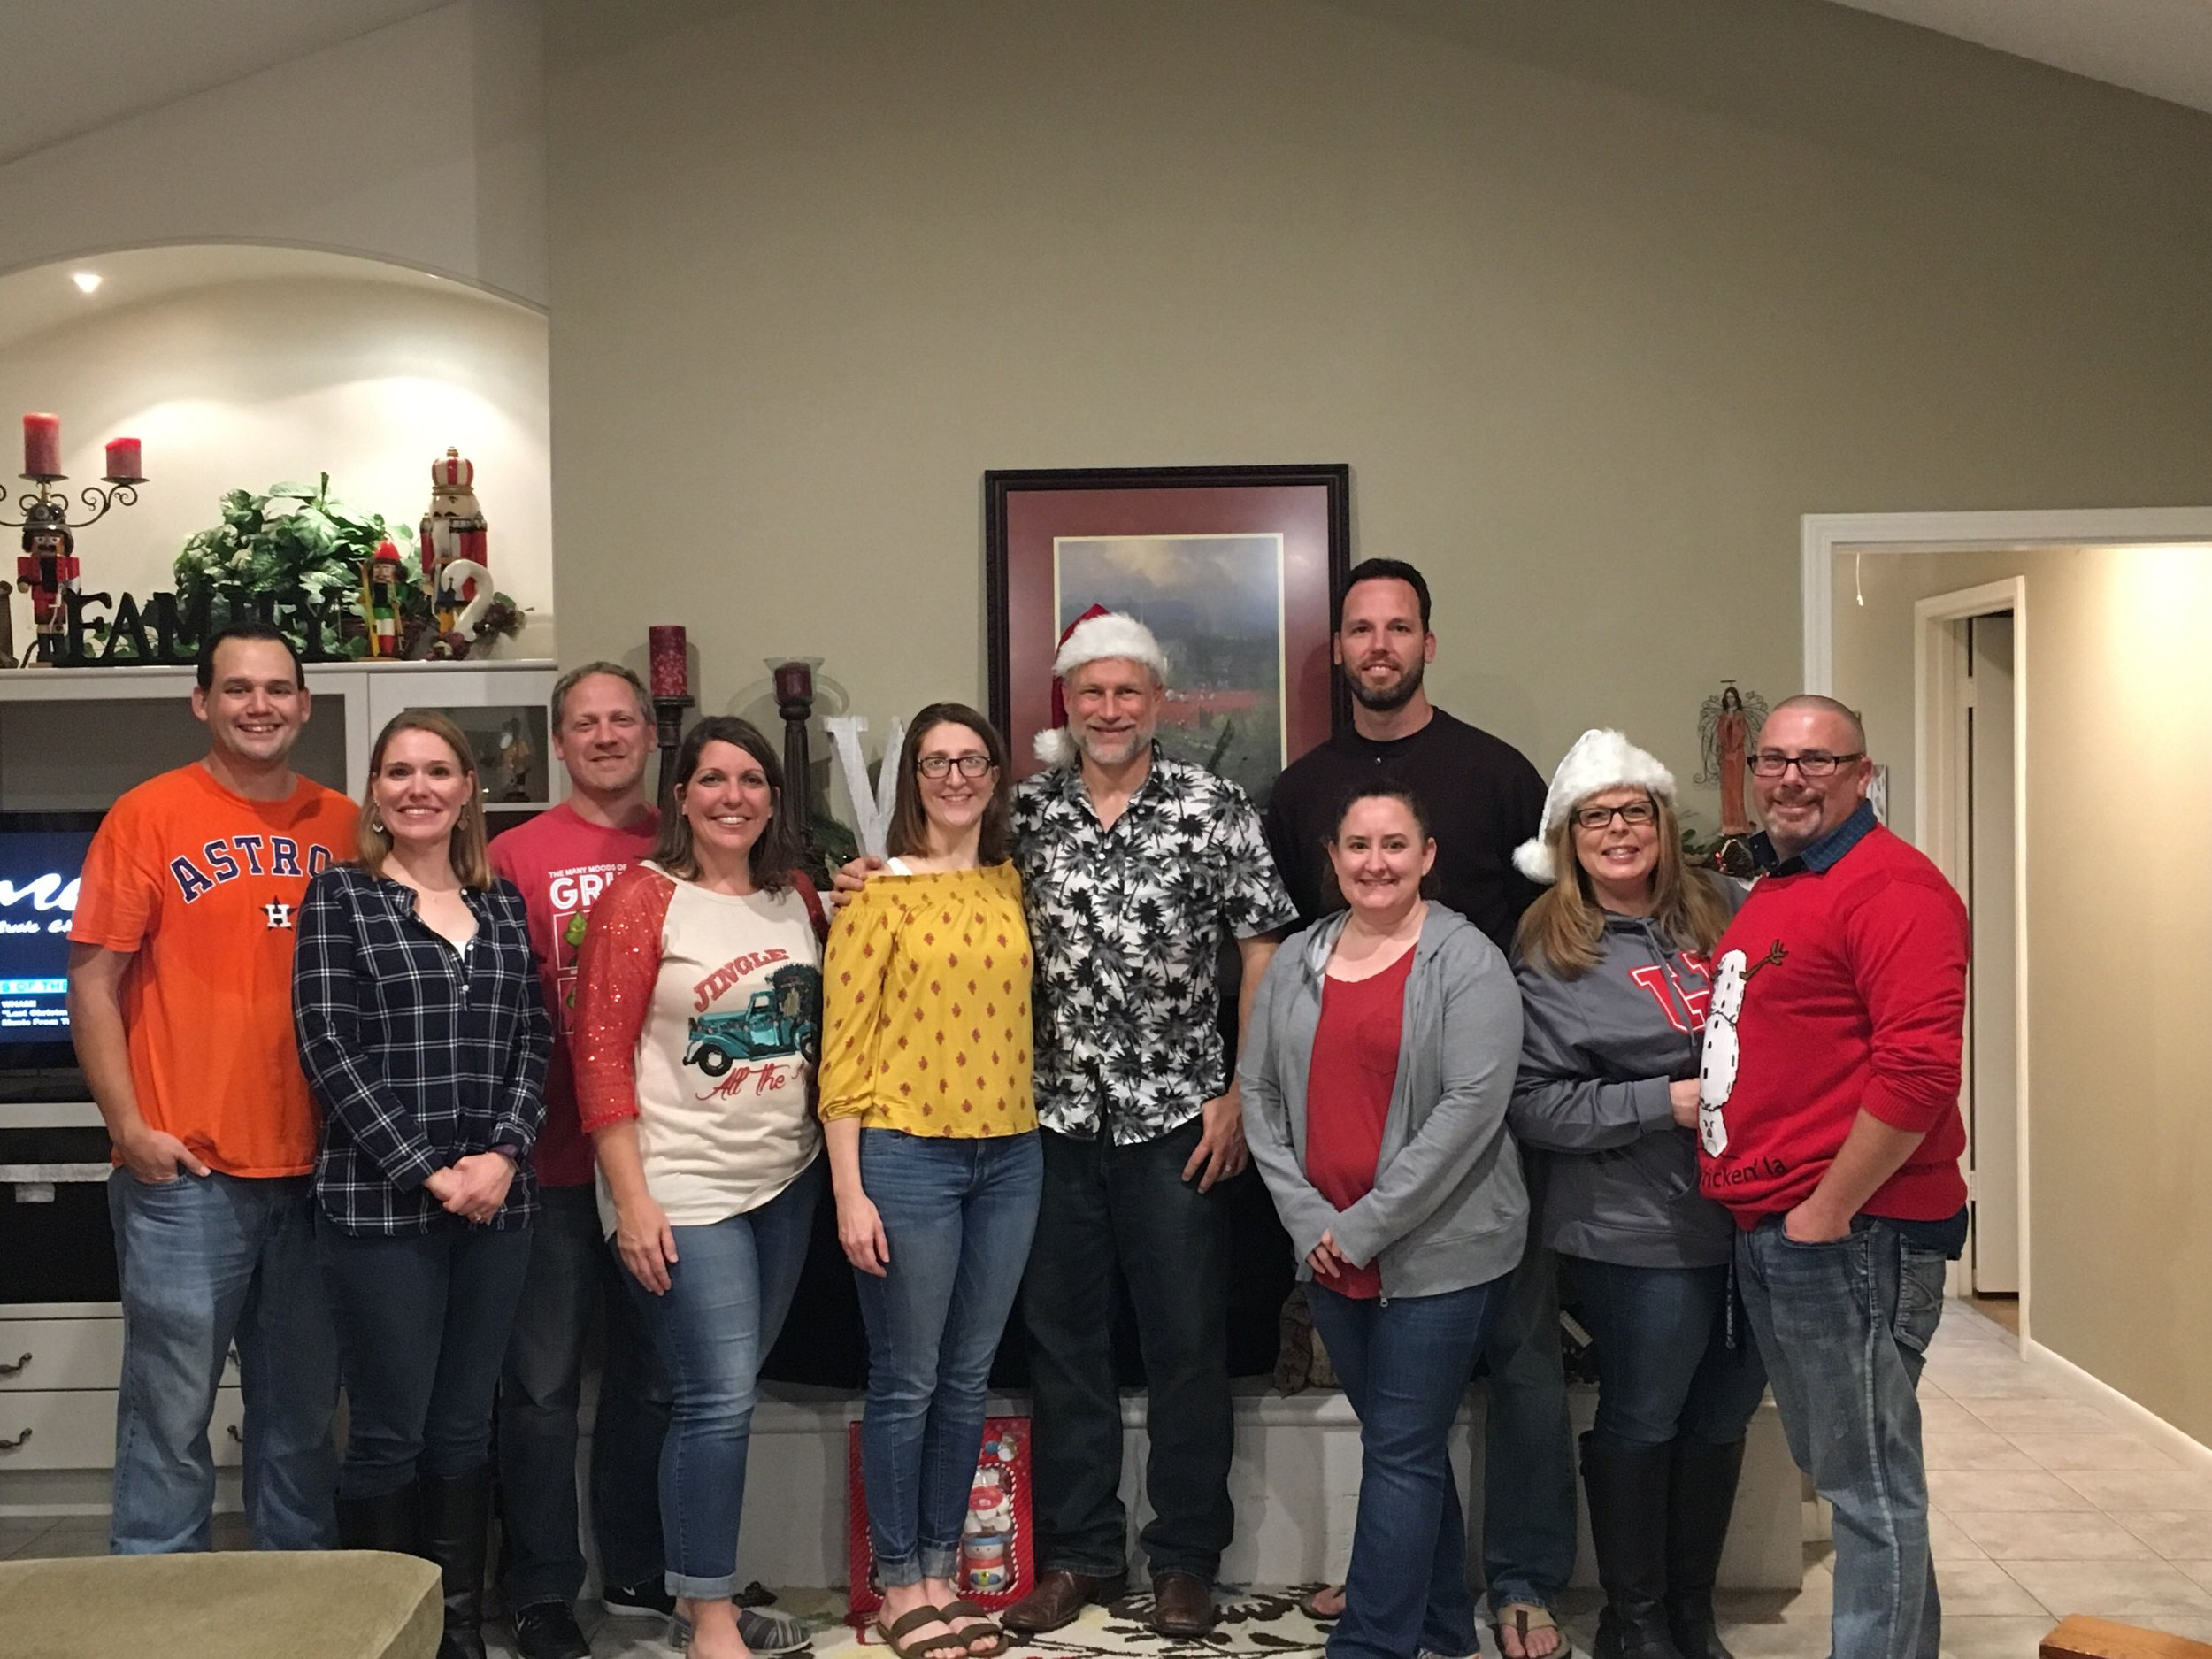 """""""Small groups have - allowed us to engage with others, make new friends and dive deep into God's word on a regular basis. The open and laid back format made it really easy to get started with the group and made us feel welcome and comfortable. We also really enjoy the social nights where we just spent time with everyone having fun."""""""